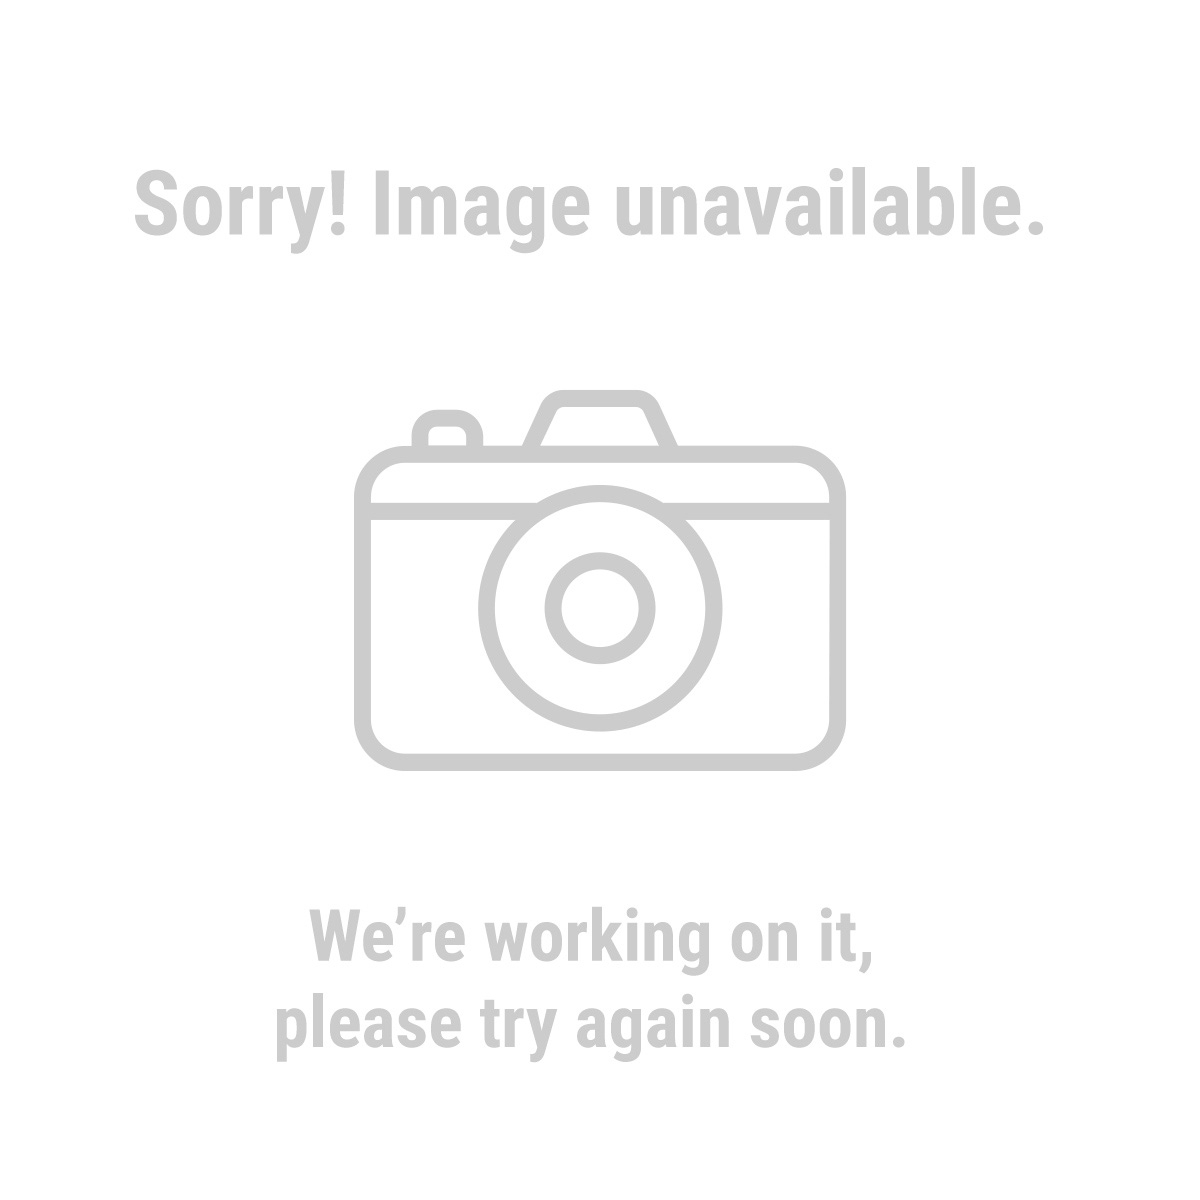 Western Safety 95271 50 Watt Megaphone with Safety Siren